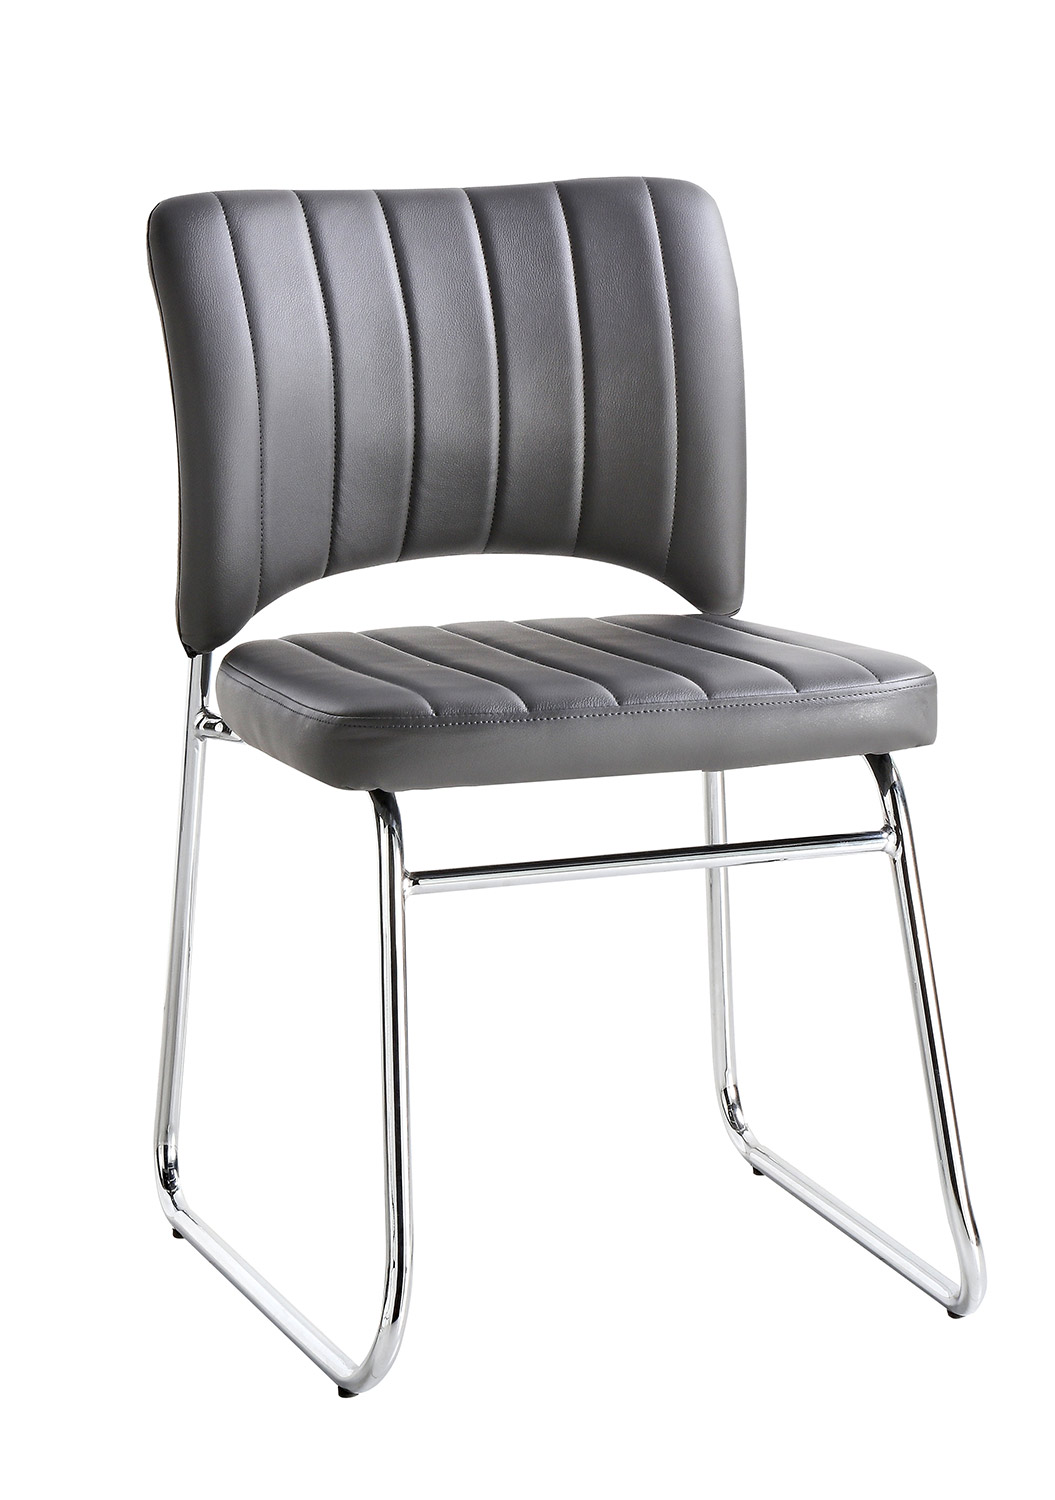 Homelegance Chromis Side Chair - Grey - Grey Bi-Cast Vinyl